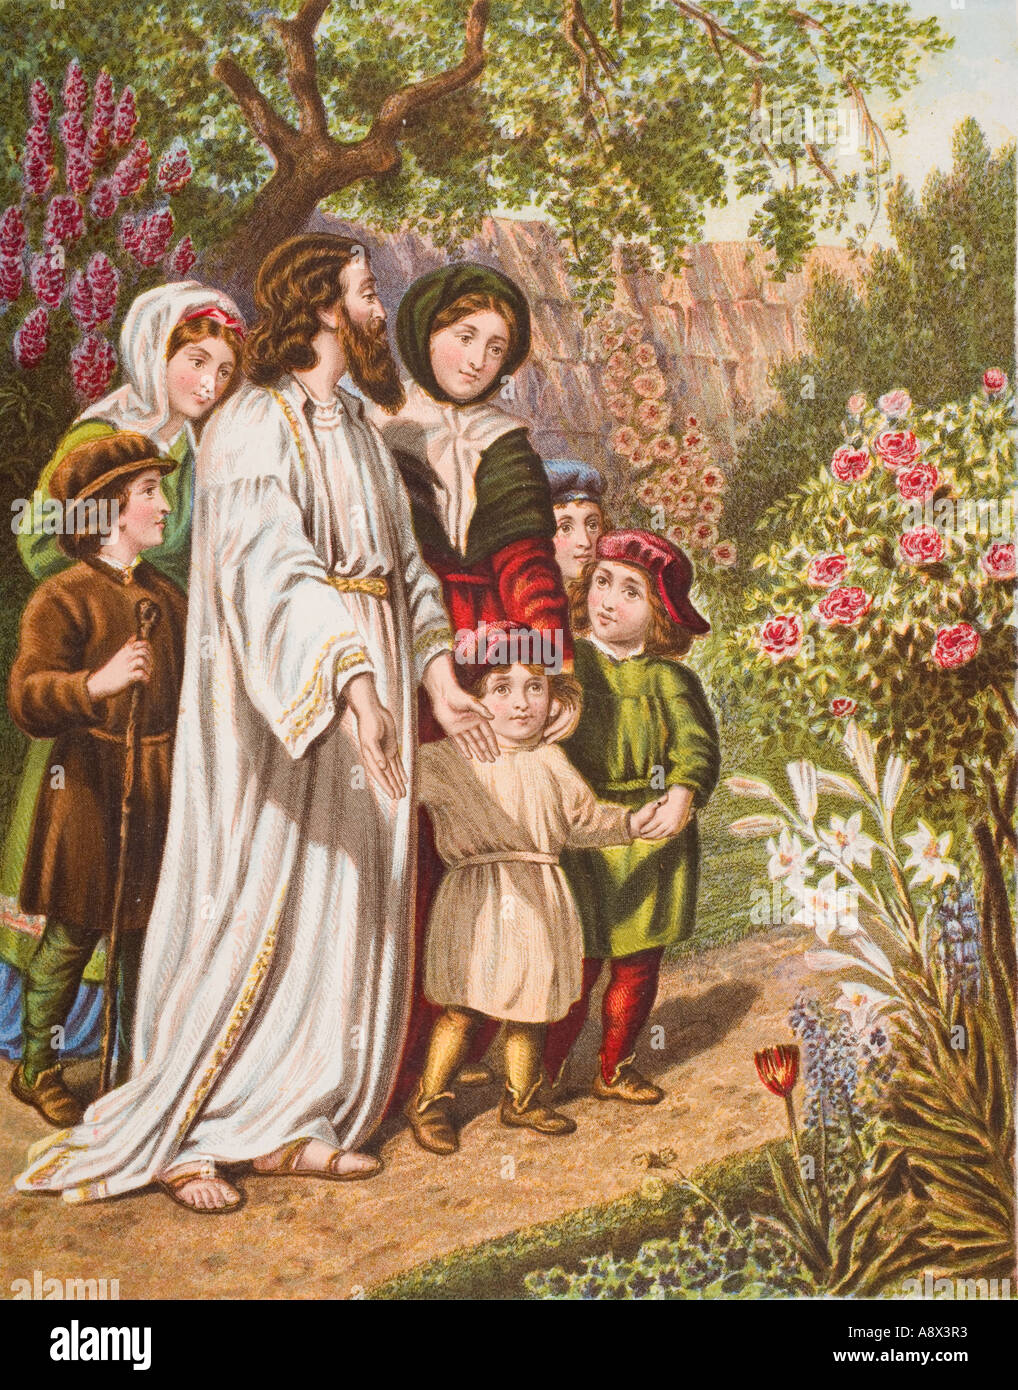 The interpreter and the pilgrims in the garden From the book The Pilgrim s Progress - Stock Image